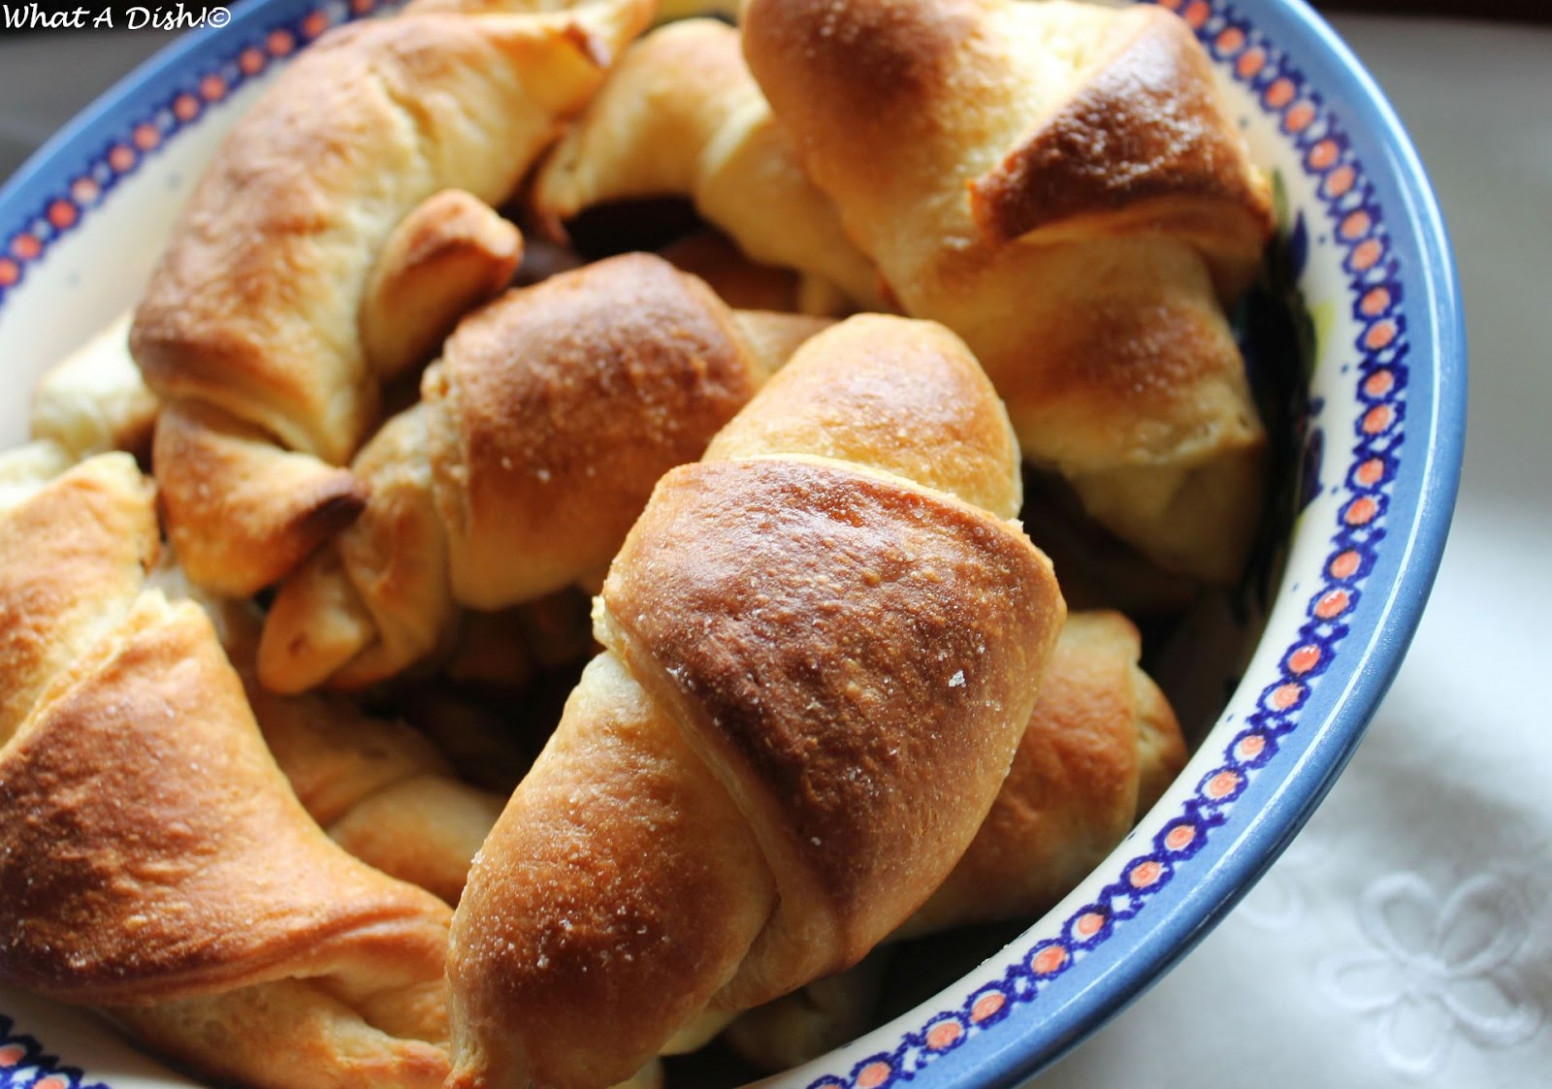 What A Dish!: Overnight Dinner Rolls - dinner recipes you can make the night before